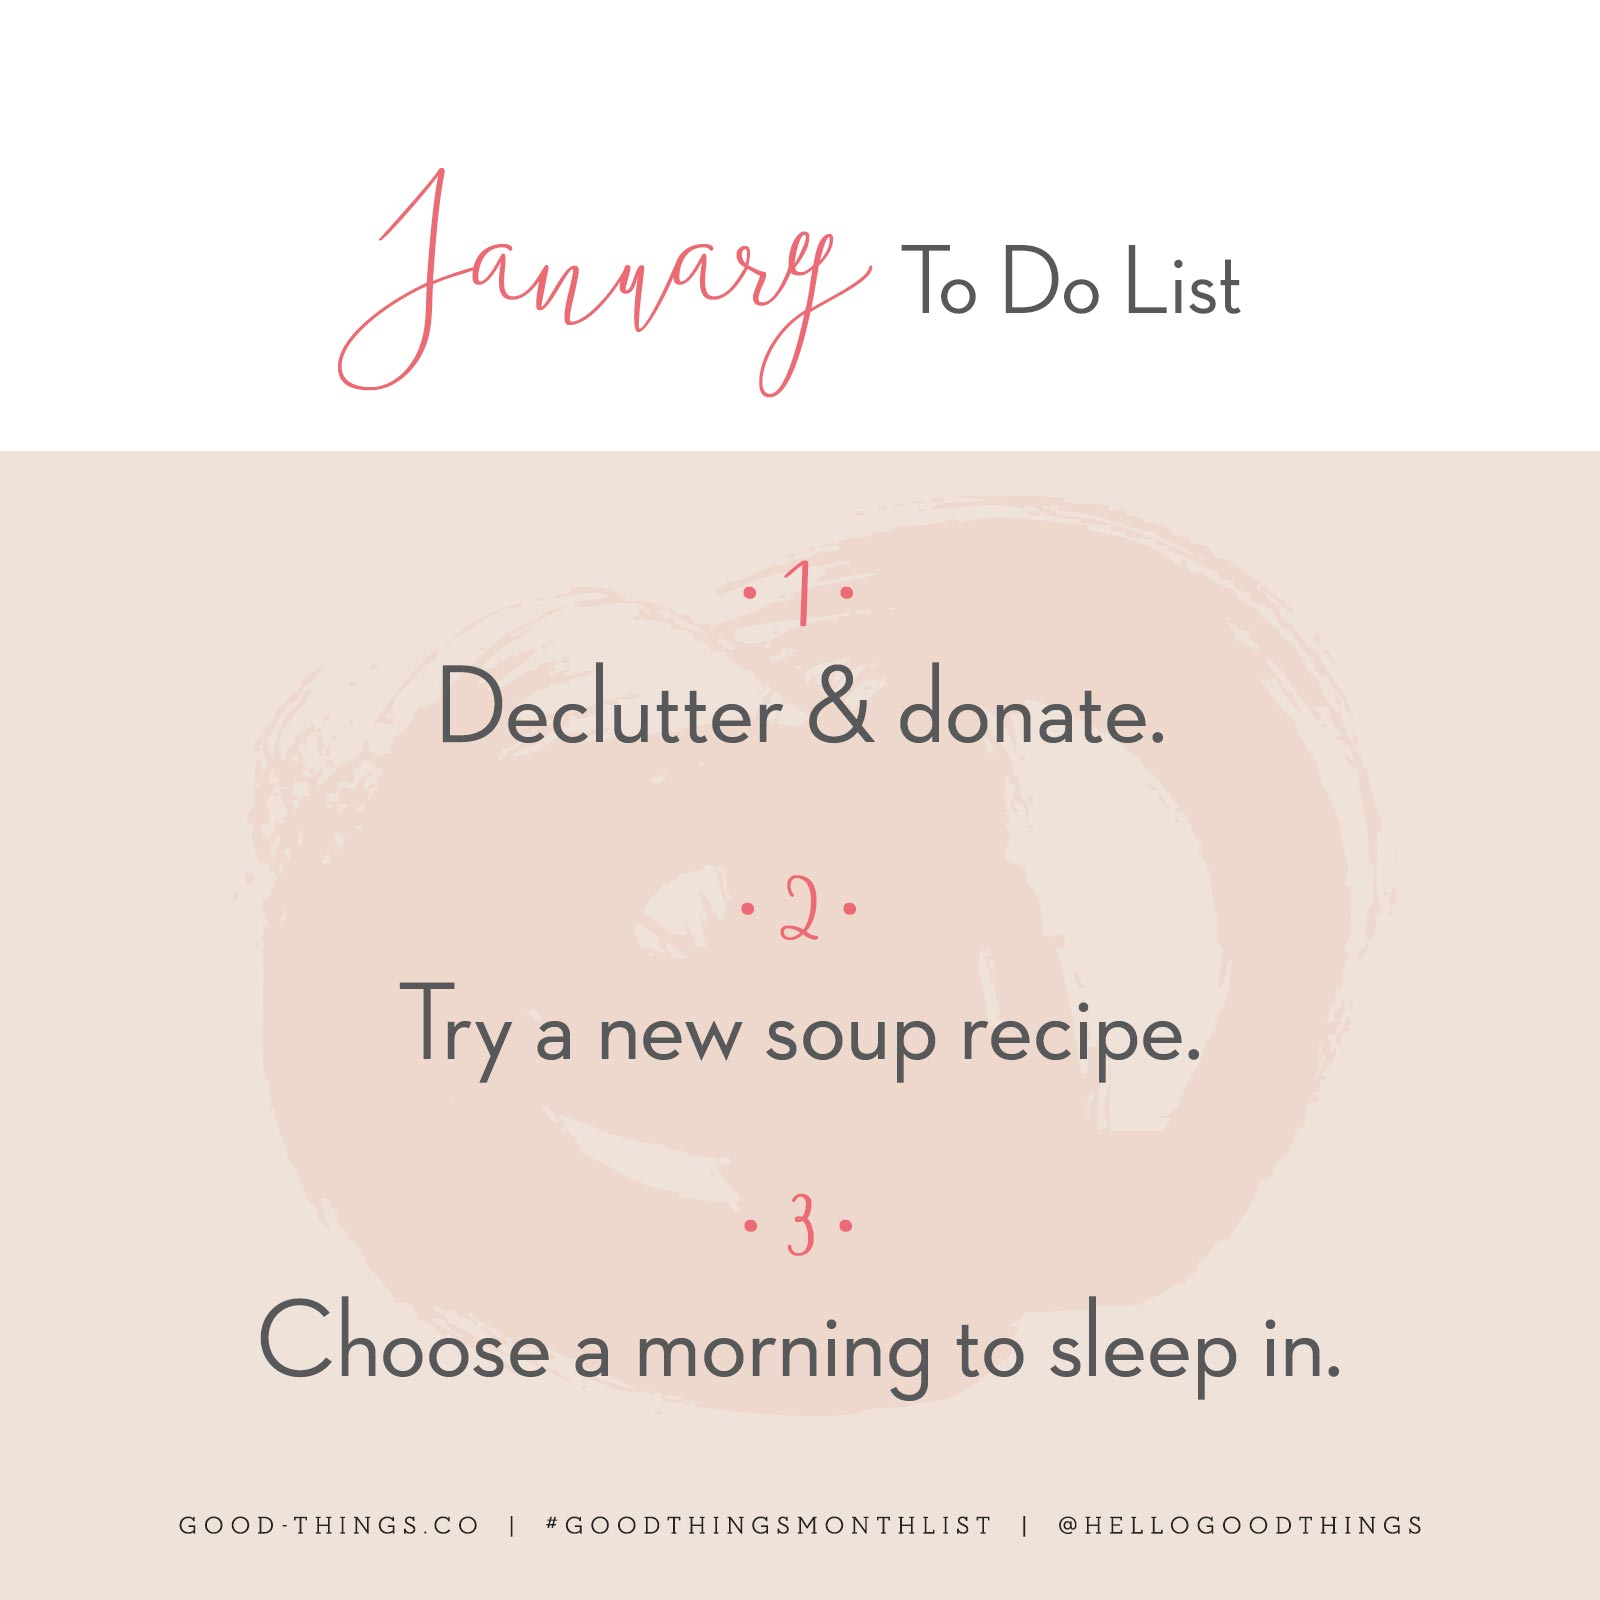 Good Things - January 2020 To Do List